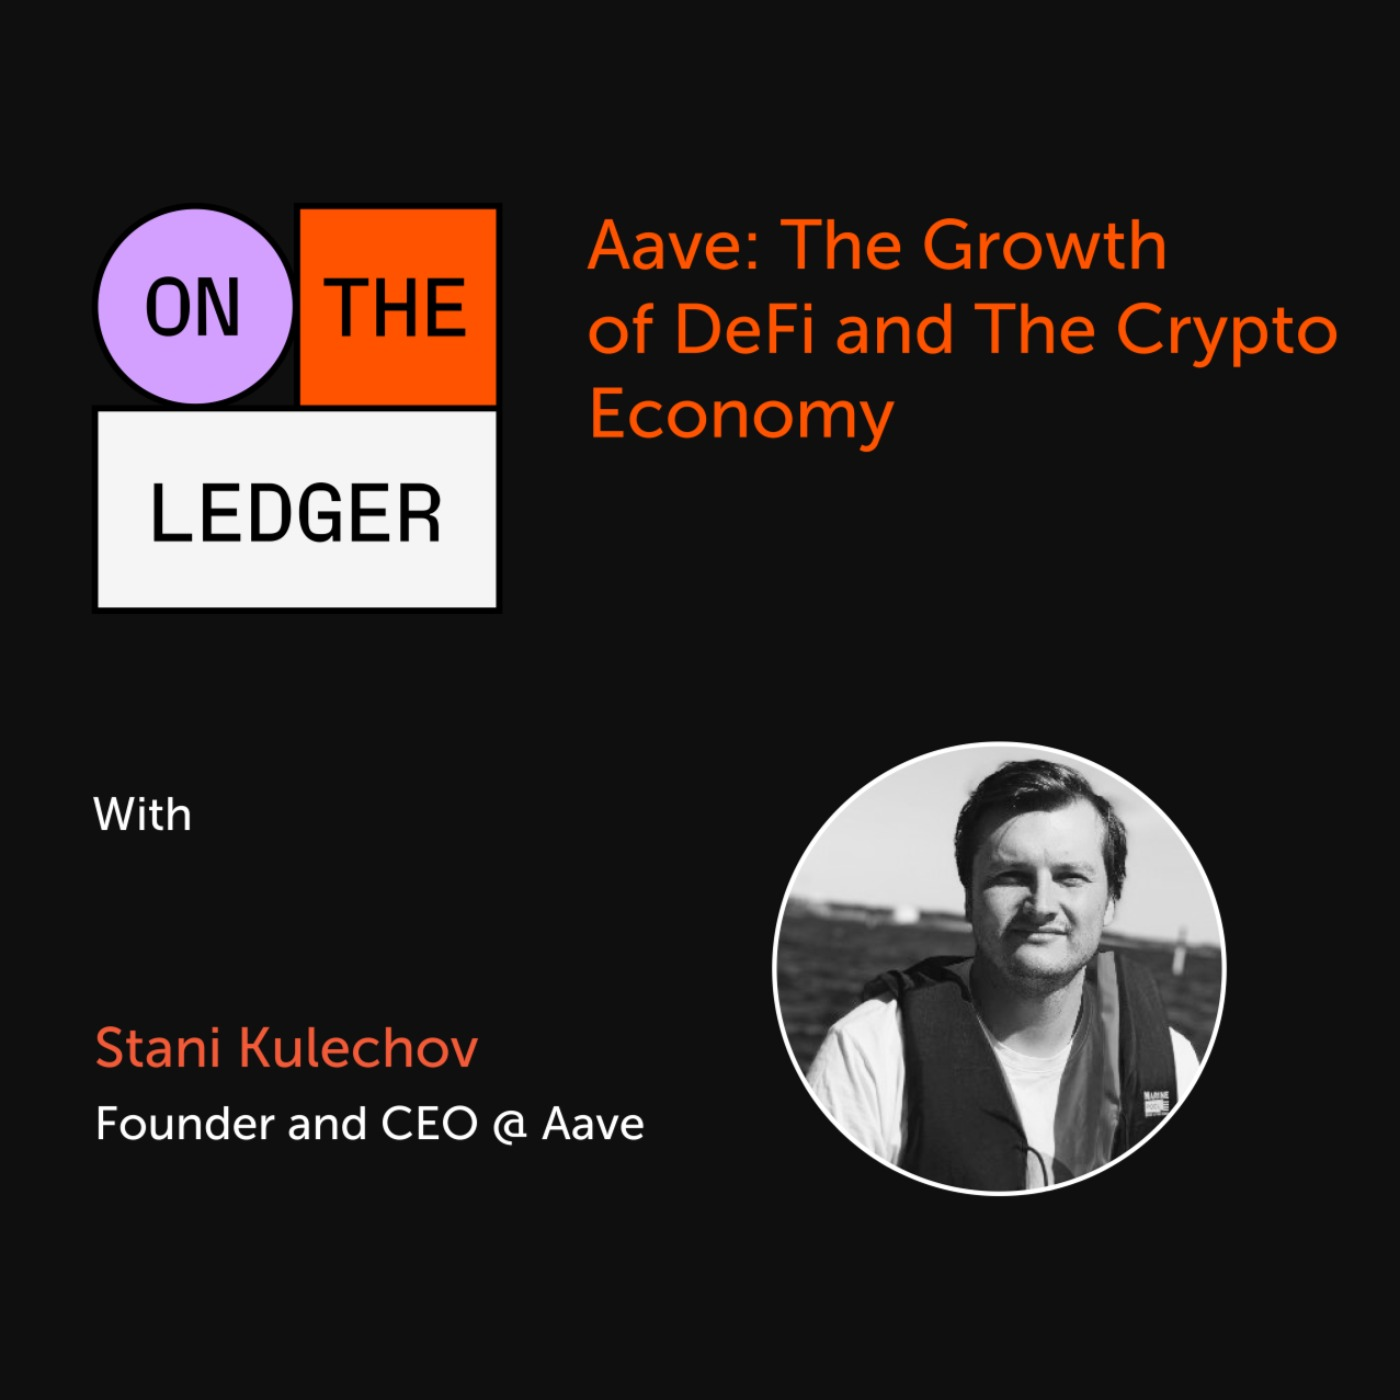 #9 Aave: The Growth of DeFi & Crypto Economy w/ S. Kulechov